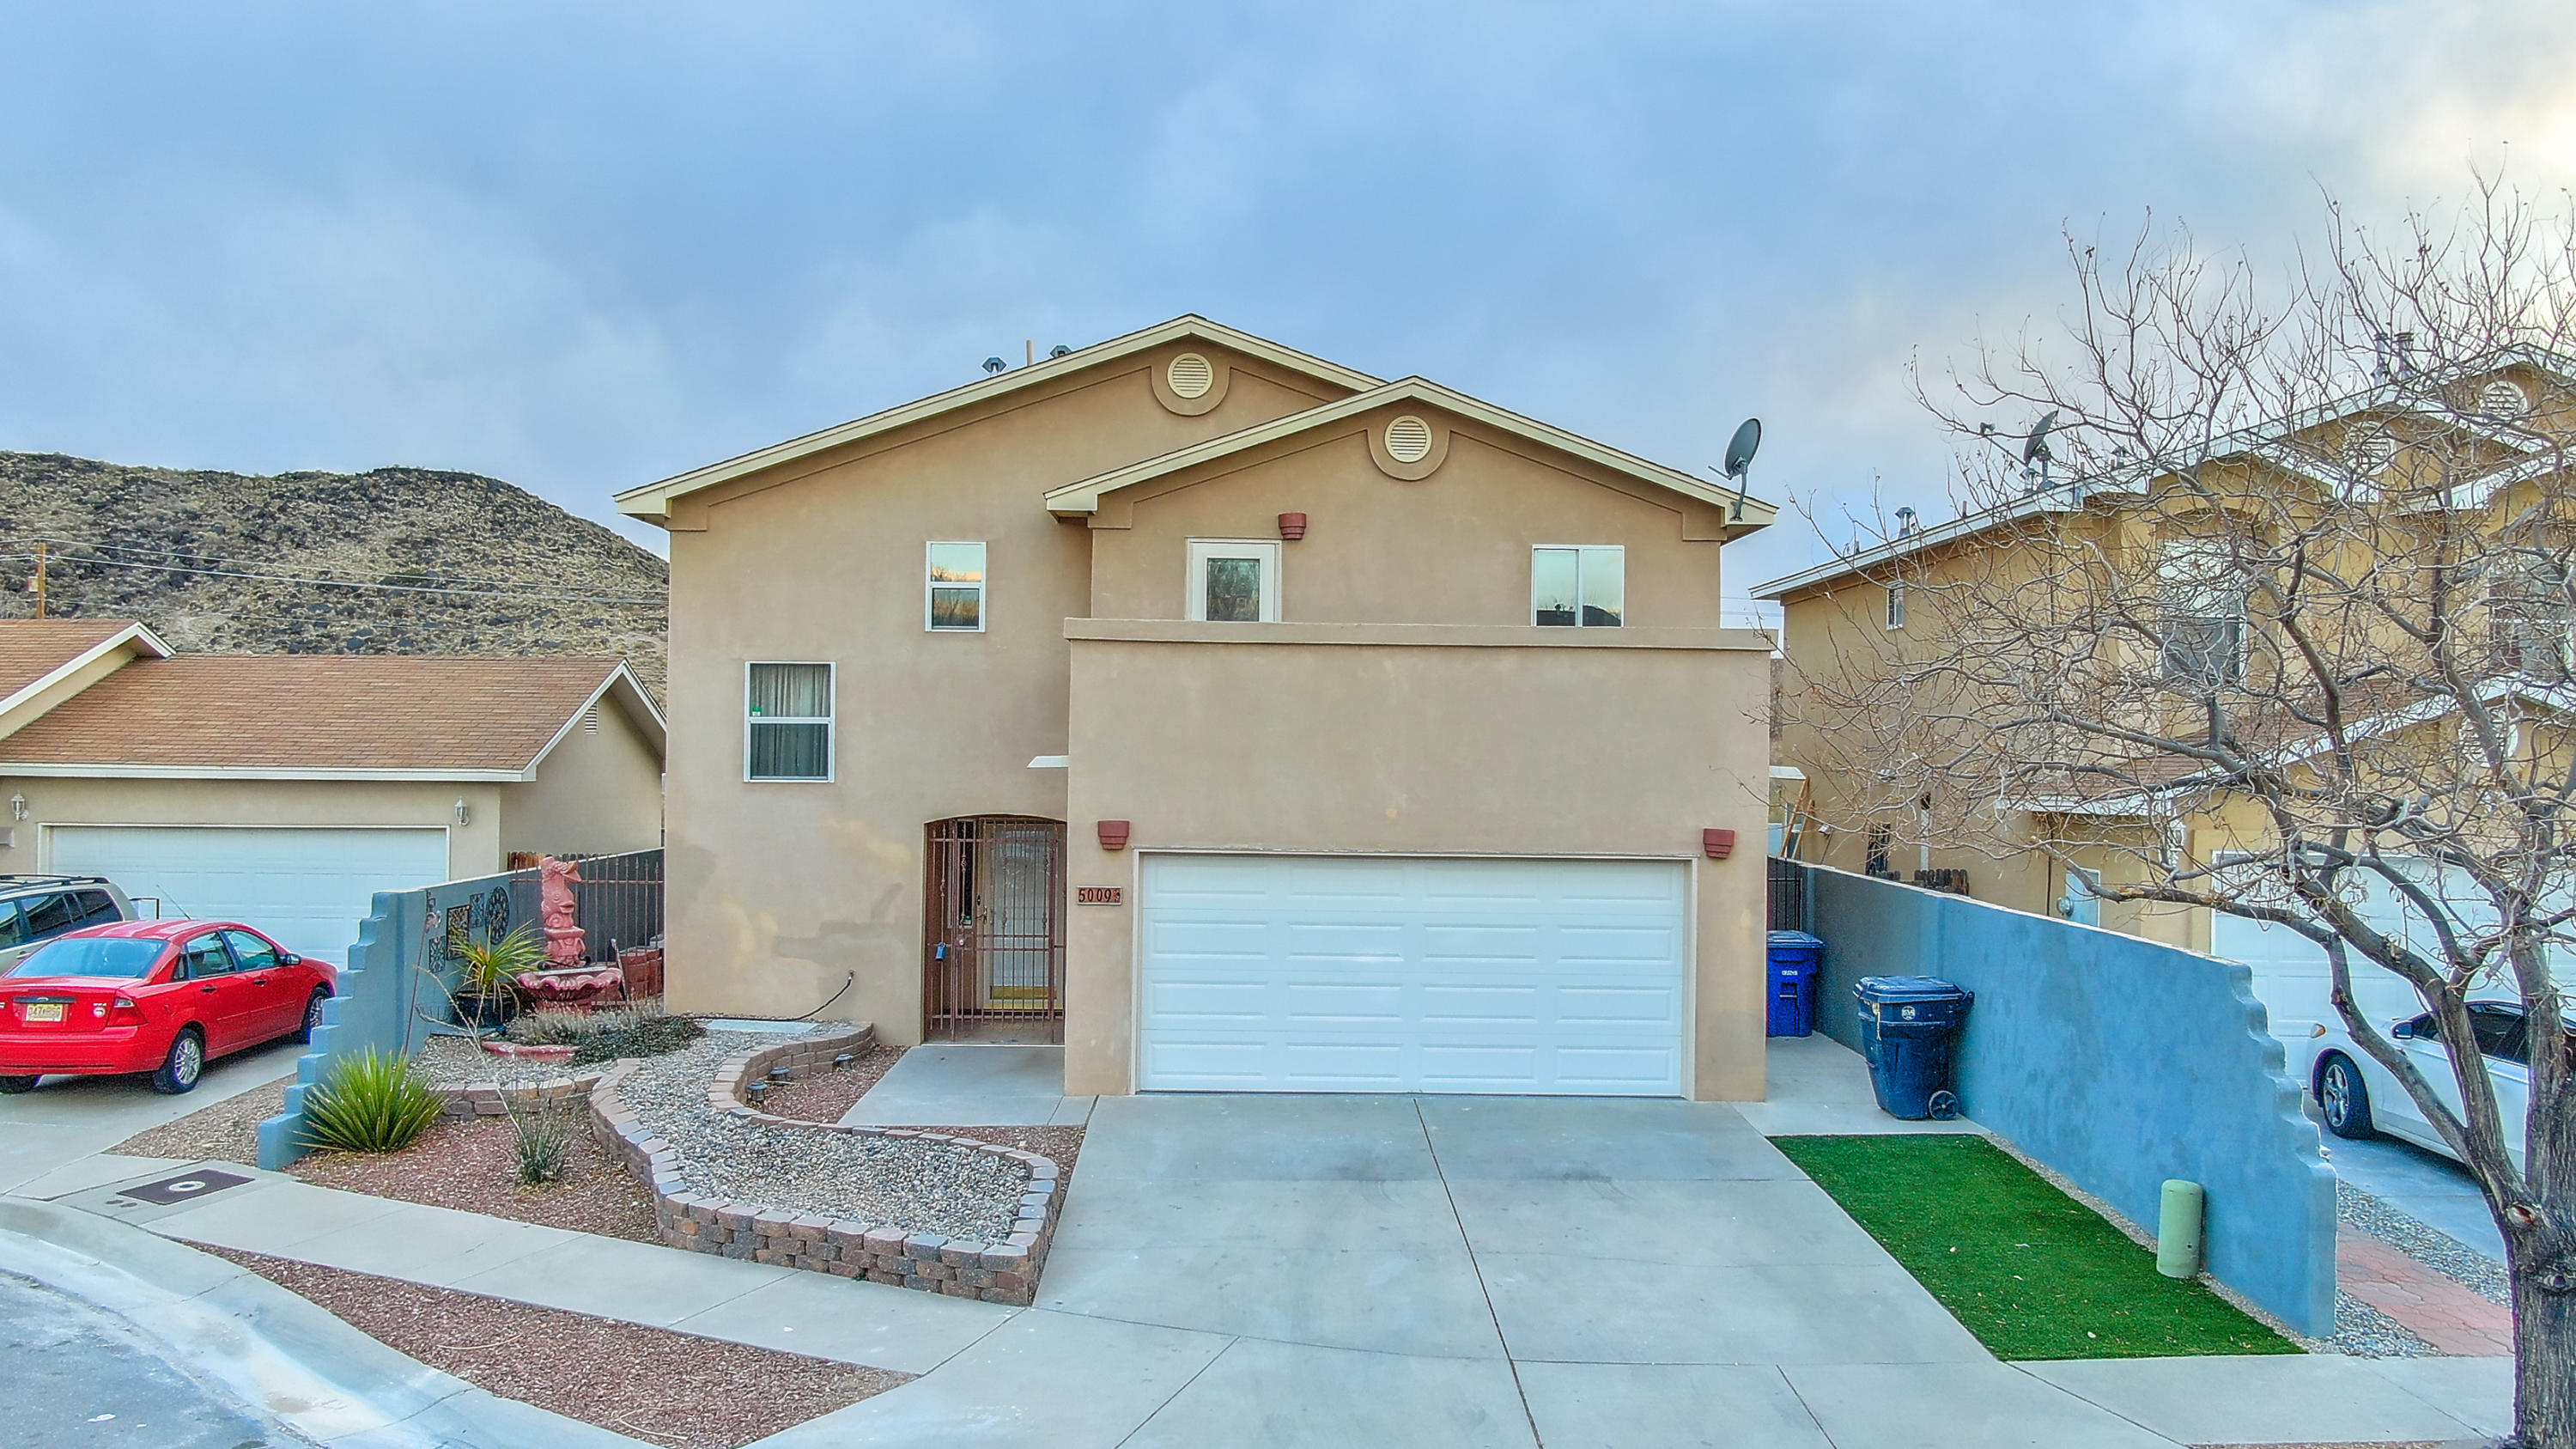 Welcome to 5009 Starfire Pl NW. In the highly desirable Taylor Ranch neighborhood this beautiful remodeled home features Stainless steel appliances, Granite counter tops, New Carpet, Fresh paint, New ceiling fans, Bathroom fixtures, and so much more. Enjoy the flex space upstairs next to the bedrooms where you can use for play area, remote learning, or home office. Balcony off the master bedroom will allow you to enjoy those beautiful New Mexico Sunrises. Call your trusted Realtor for a showing today.